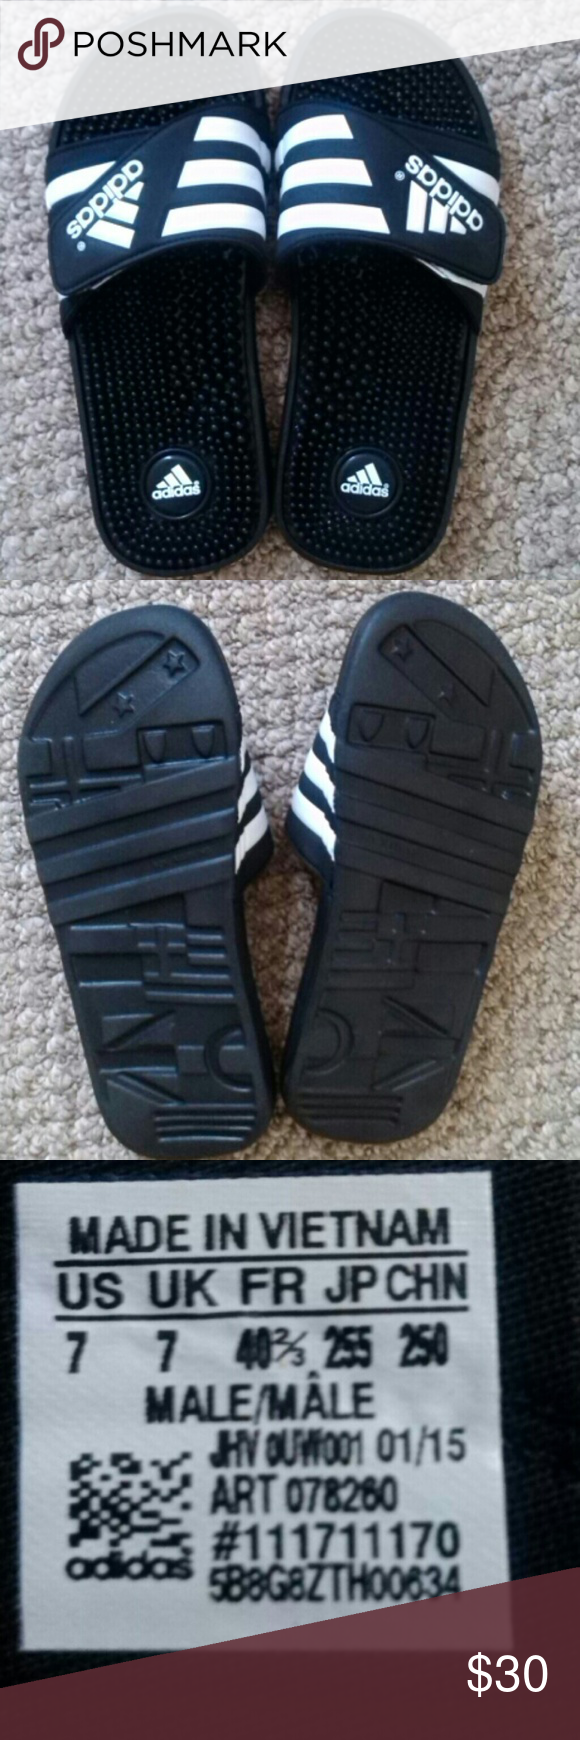 wholesale price of adidas shoes in vietnam d88b6 c764f